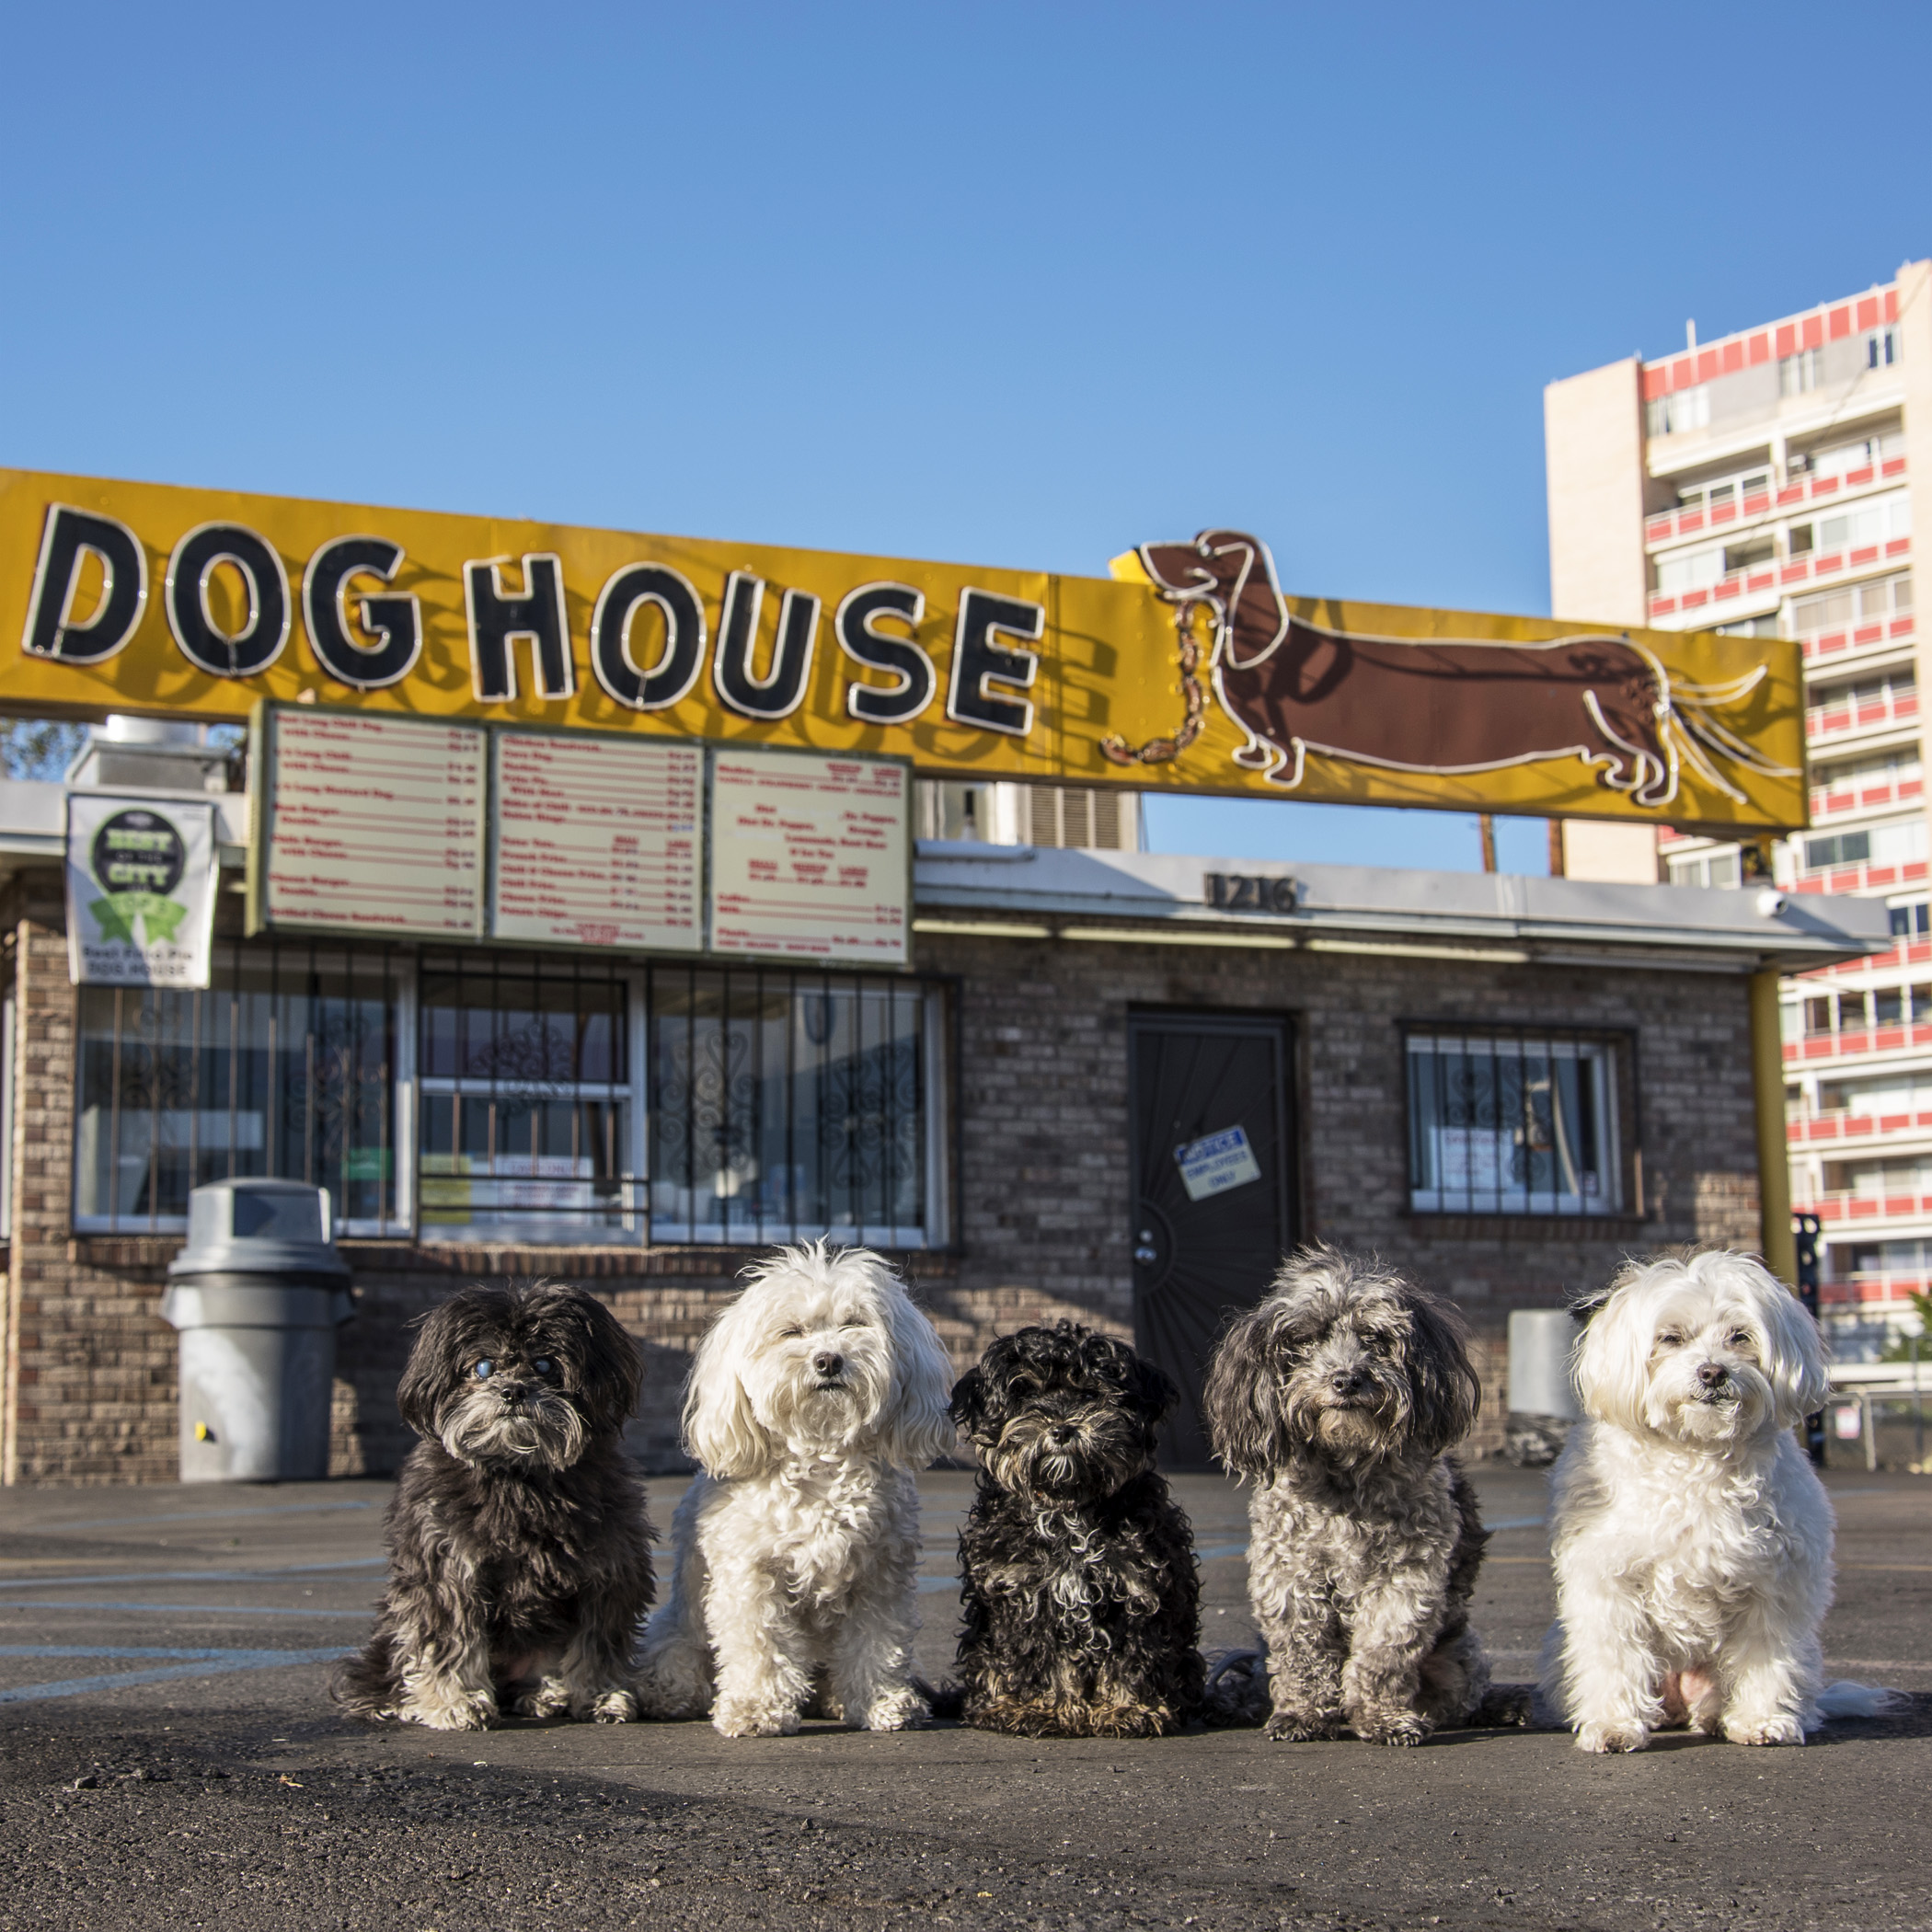 The Dog House. We were hoping to find Jesse and his free money, but no luck!